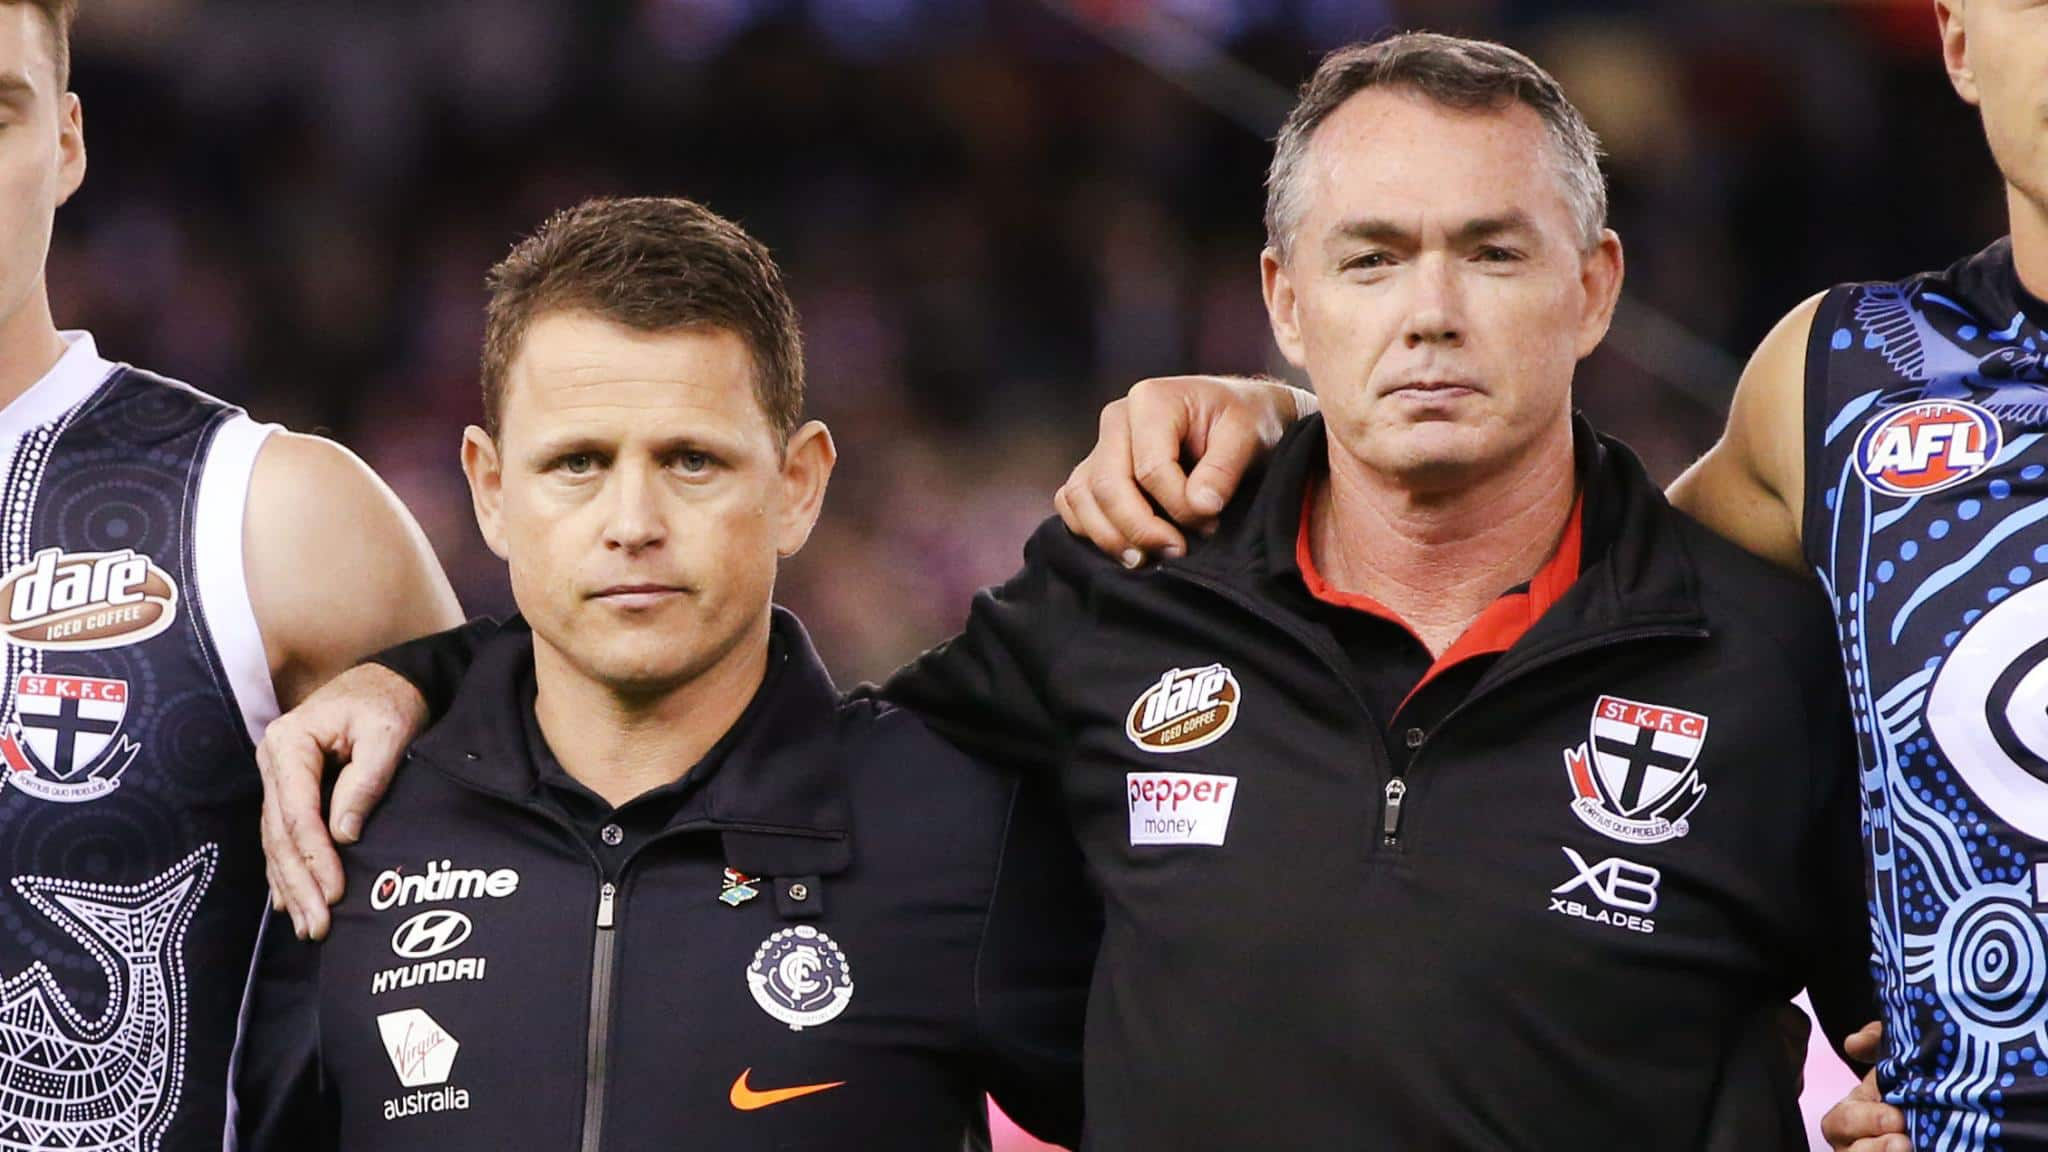 BARRETT: Two more coaches will be feeling the heat